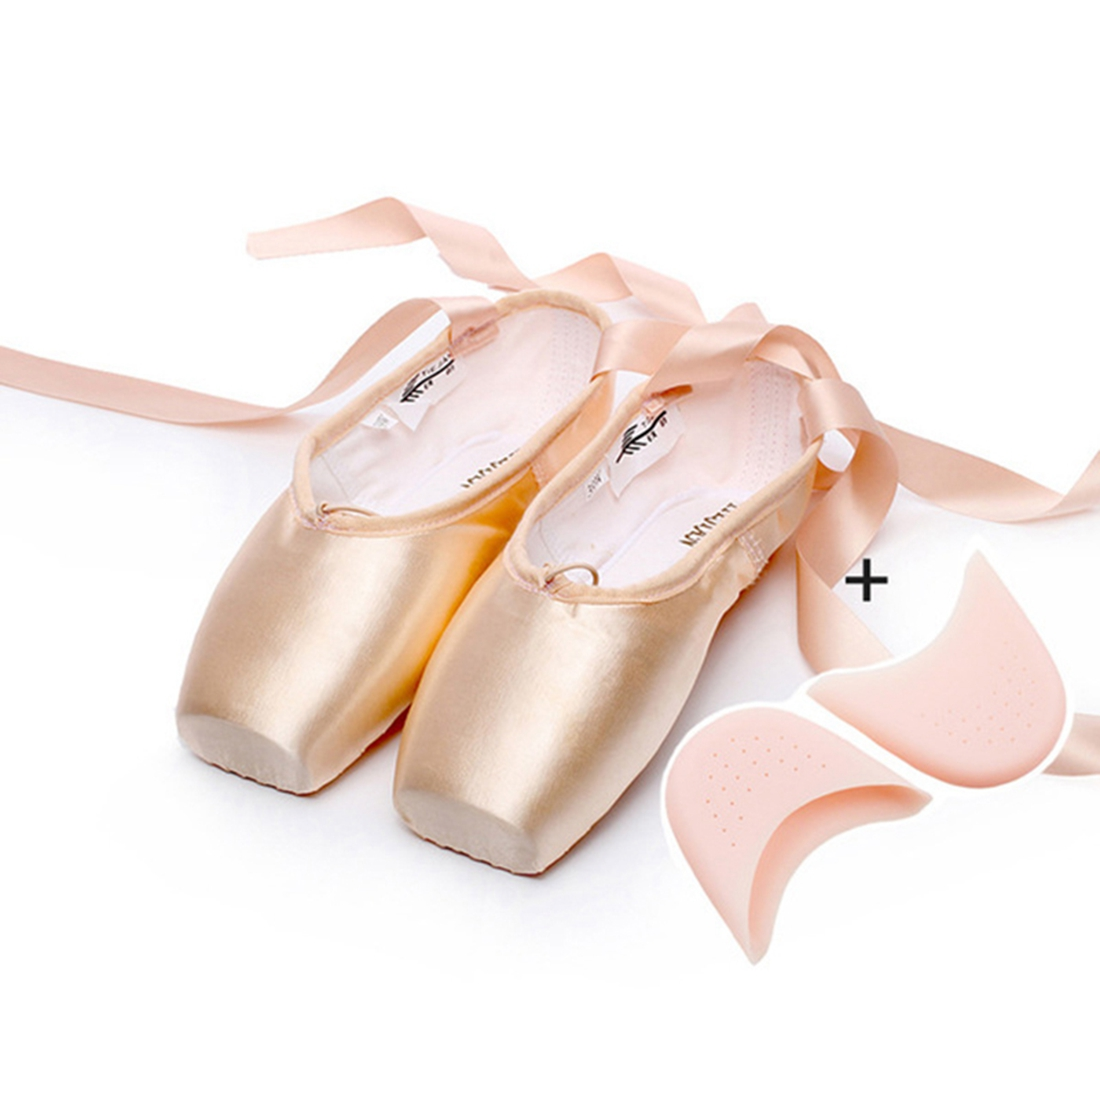 new-professional-font-b-ballet-b-font-dancing-practice-shoes-ladies-professional-latin-font-b-ballet-b-font-shoes-with-ribbons-font-b-ballet-b-font-pointe-shoes-for-women